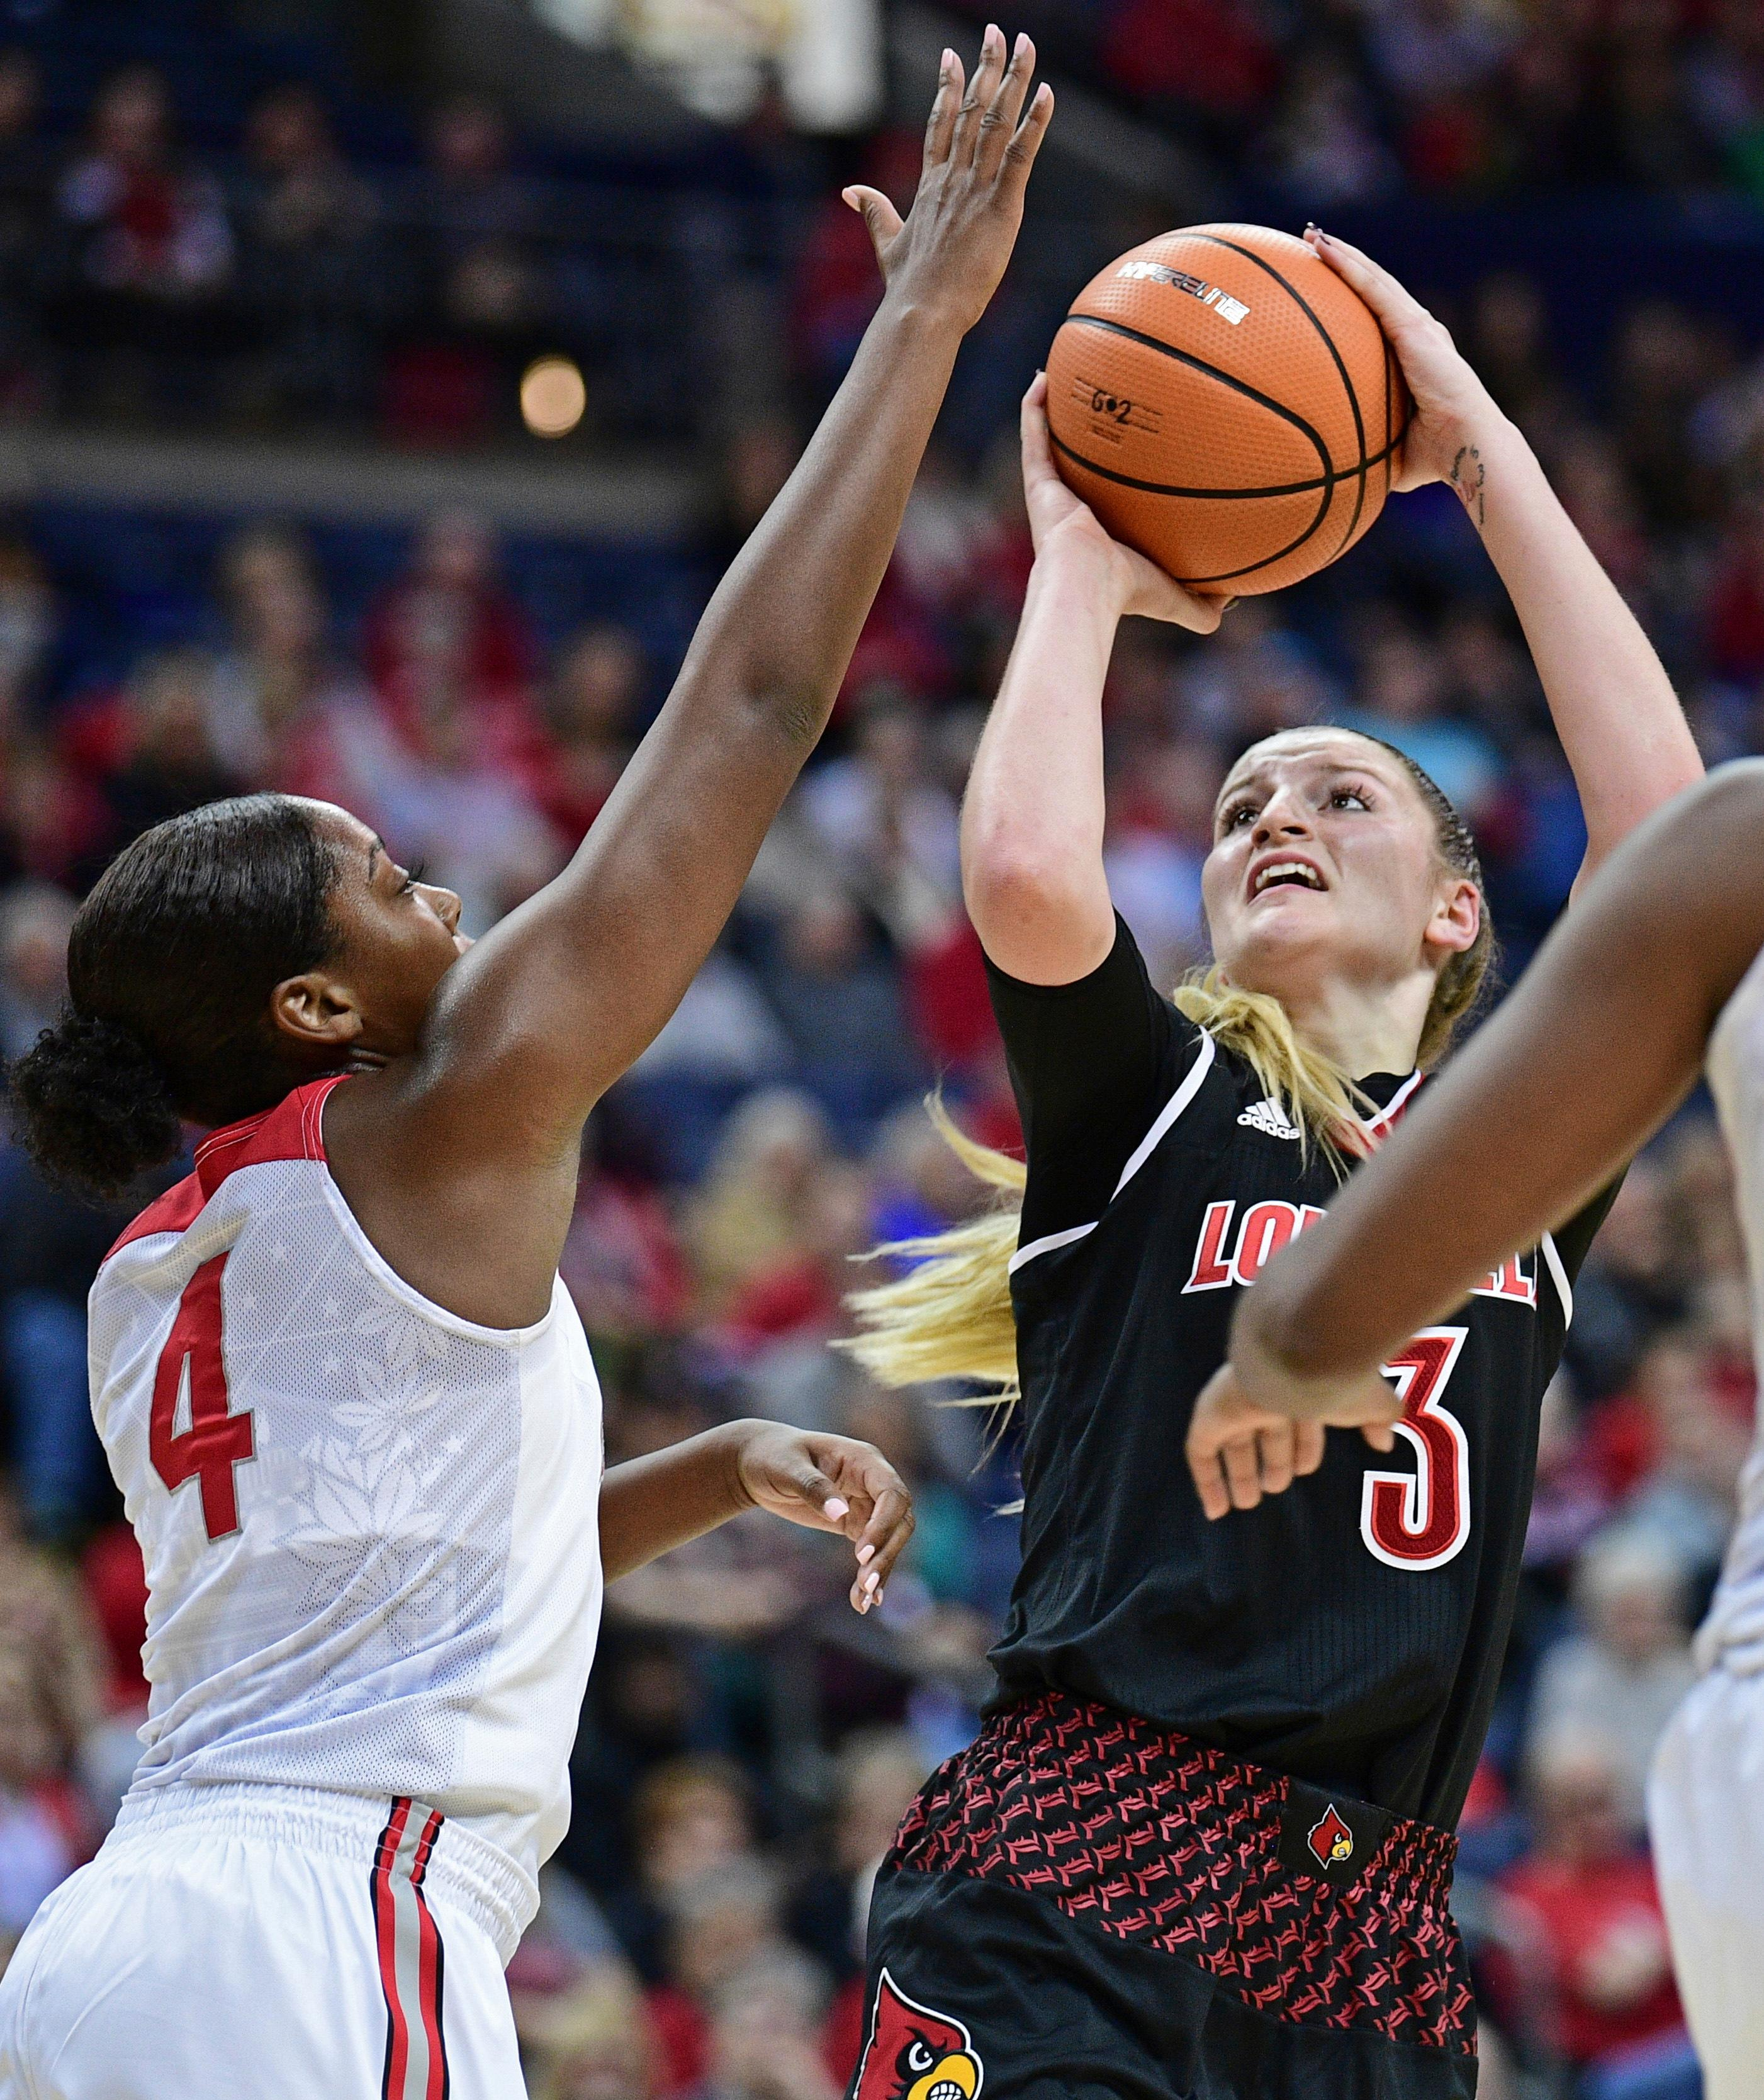 Louisville's Sam Fuehring shoots over Ohio State's Sierra Calhoun during the first quarter of an NCAA college basketball game, Sunday, Nov. 12, 2017, in Columbus, Ohio. (AP Photo/David Dermer)